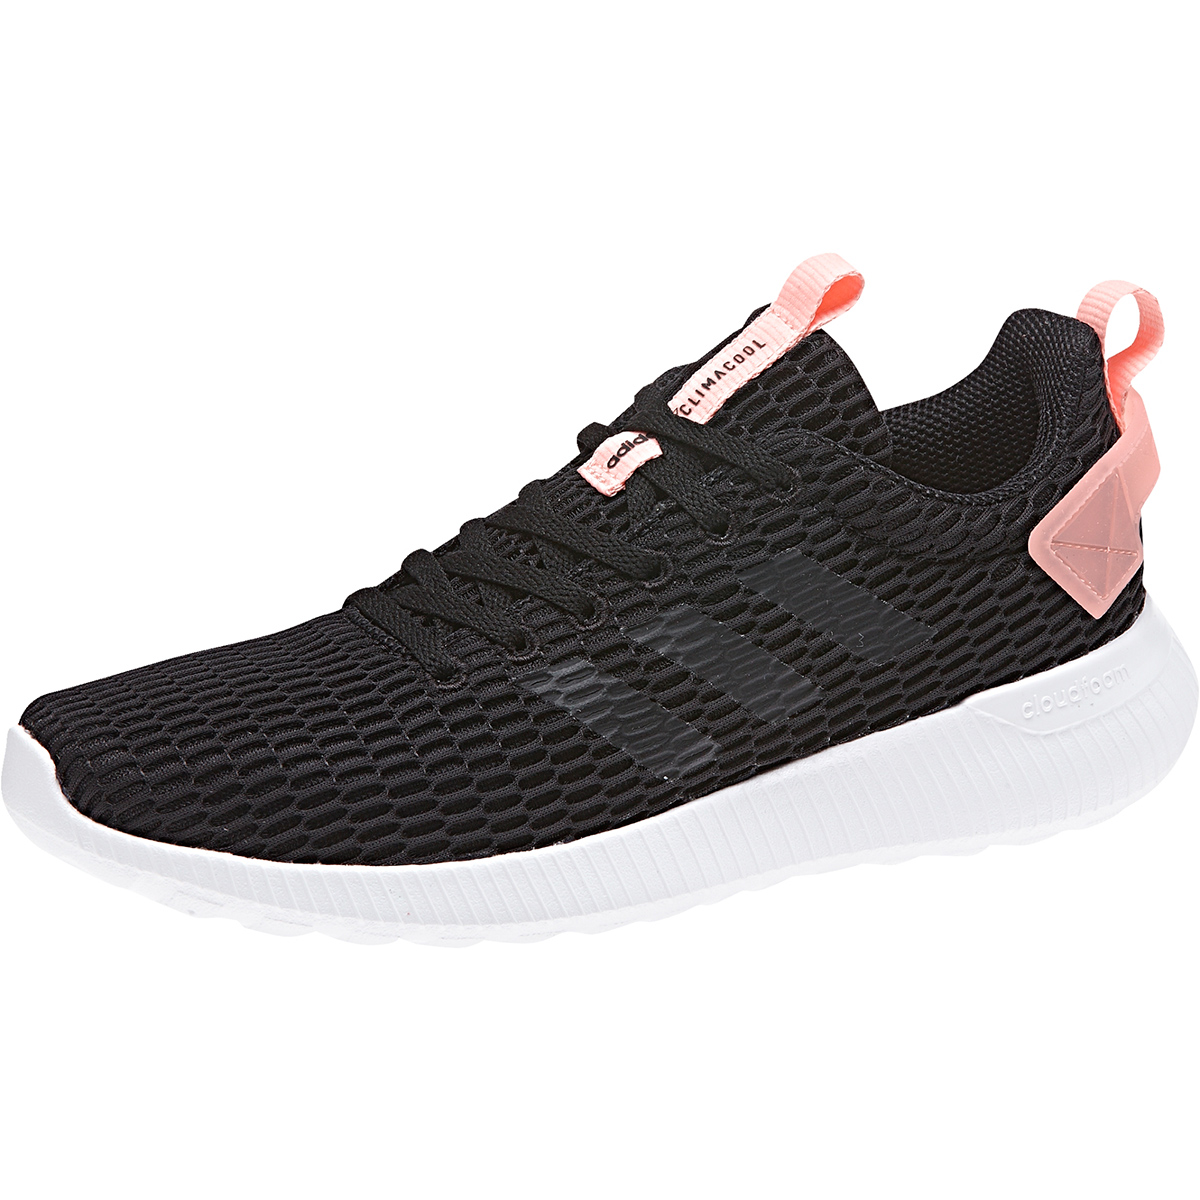 new style 1ff19 b8f74 ADIDAS Women's Cloudfoam Lite Racer CC Running Shoes